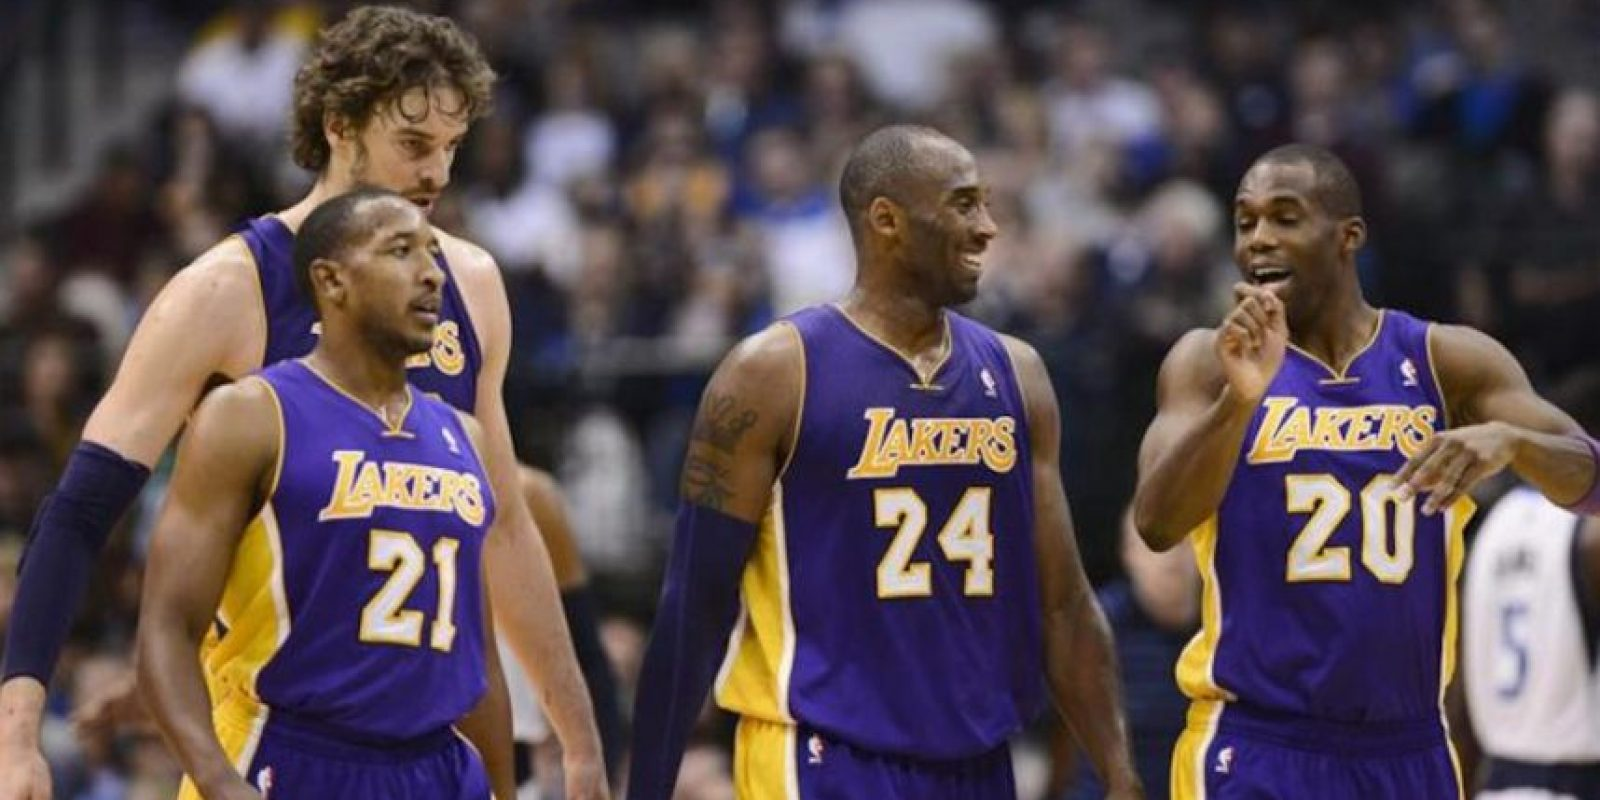 Los jugadores de Los Angeles Lakers Kobe Bryant (centro derecha), Jodie Meeks (d), Pau Gasol (centro izquierda), y Chris Duhon (i), durante el partido contra los Mavericks, anoche en el American Airlines Center in Dallas, Texas. EFE